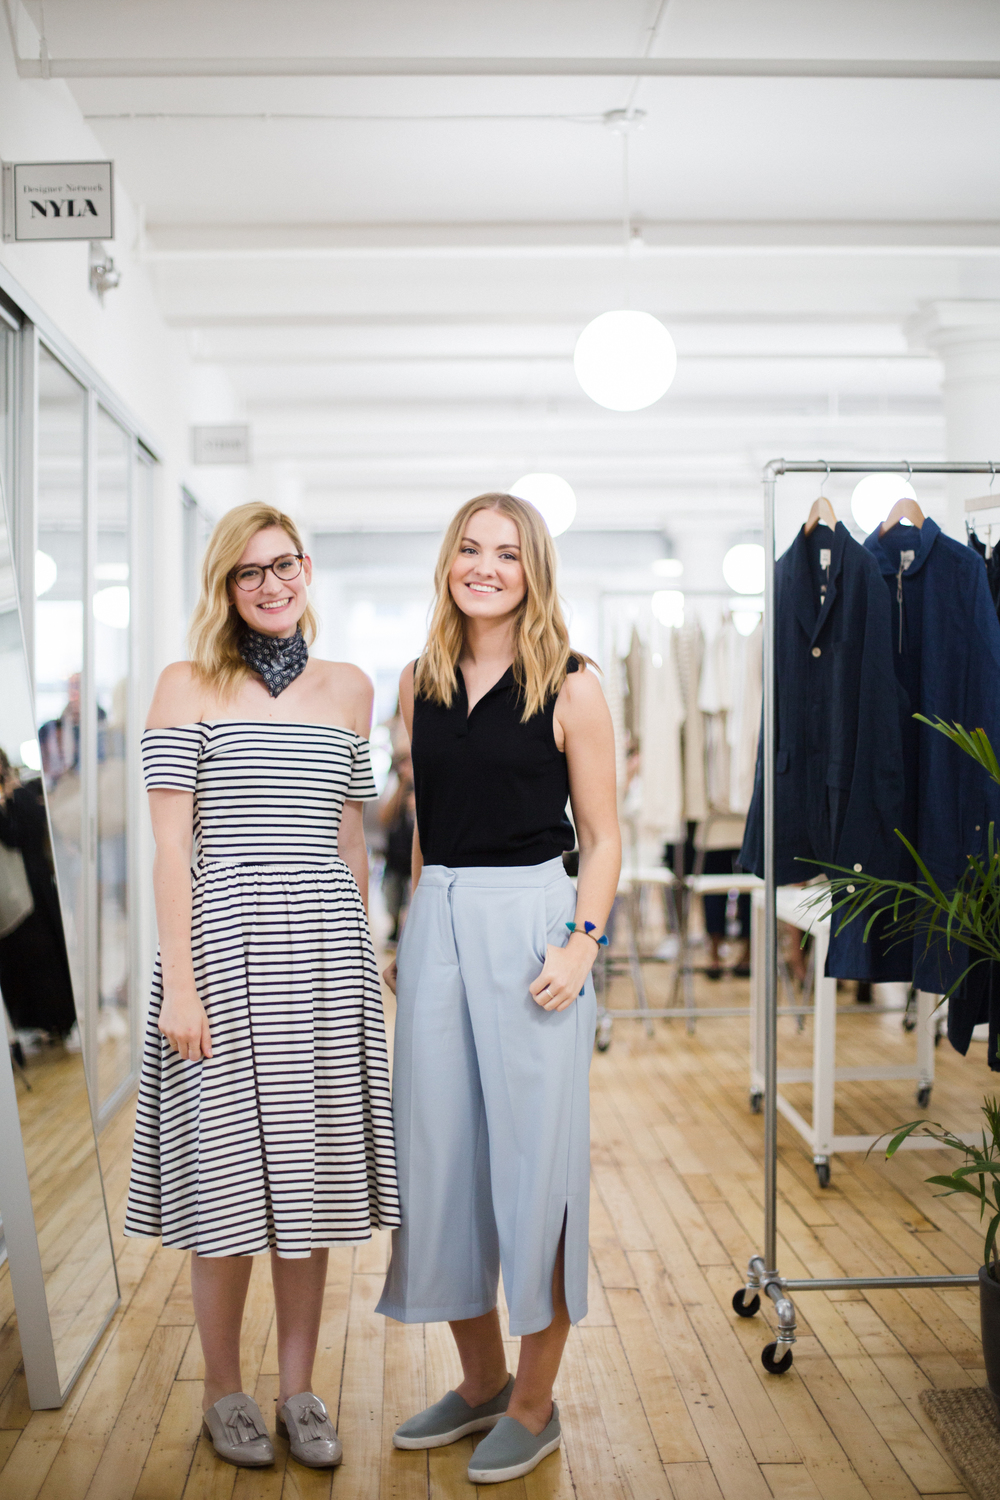 Courtney Denton, PR and Marketing coordinator at Club Monaco and Carly Quaggan, PR and Marketing intern at Club Monaco